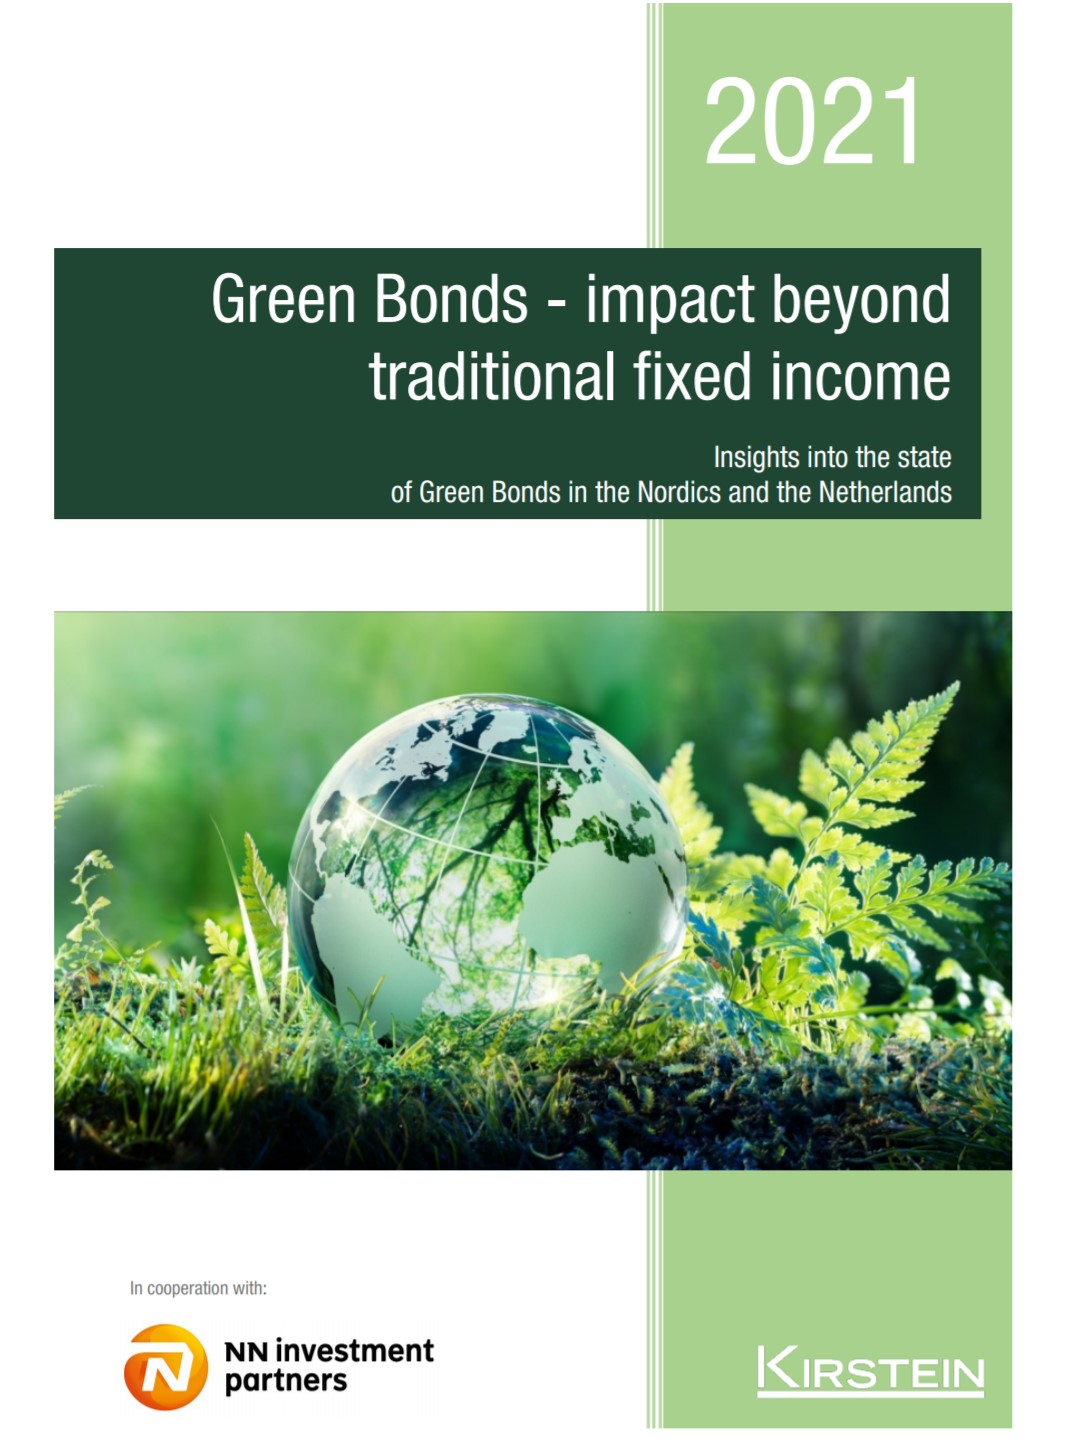 New study shows strong green bond focus in Nordic and Dutch markets